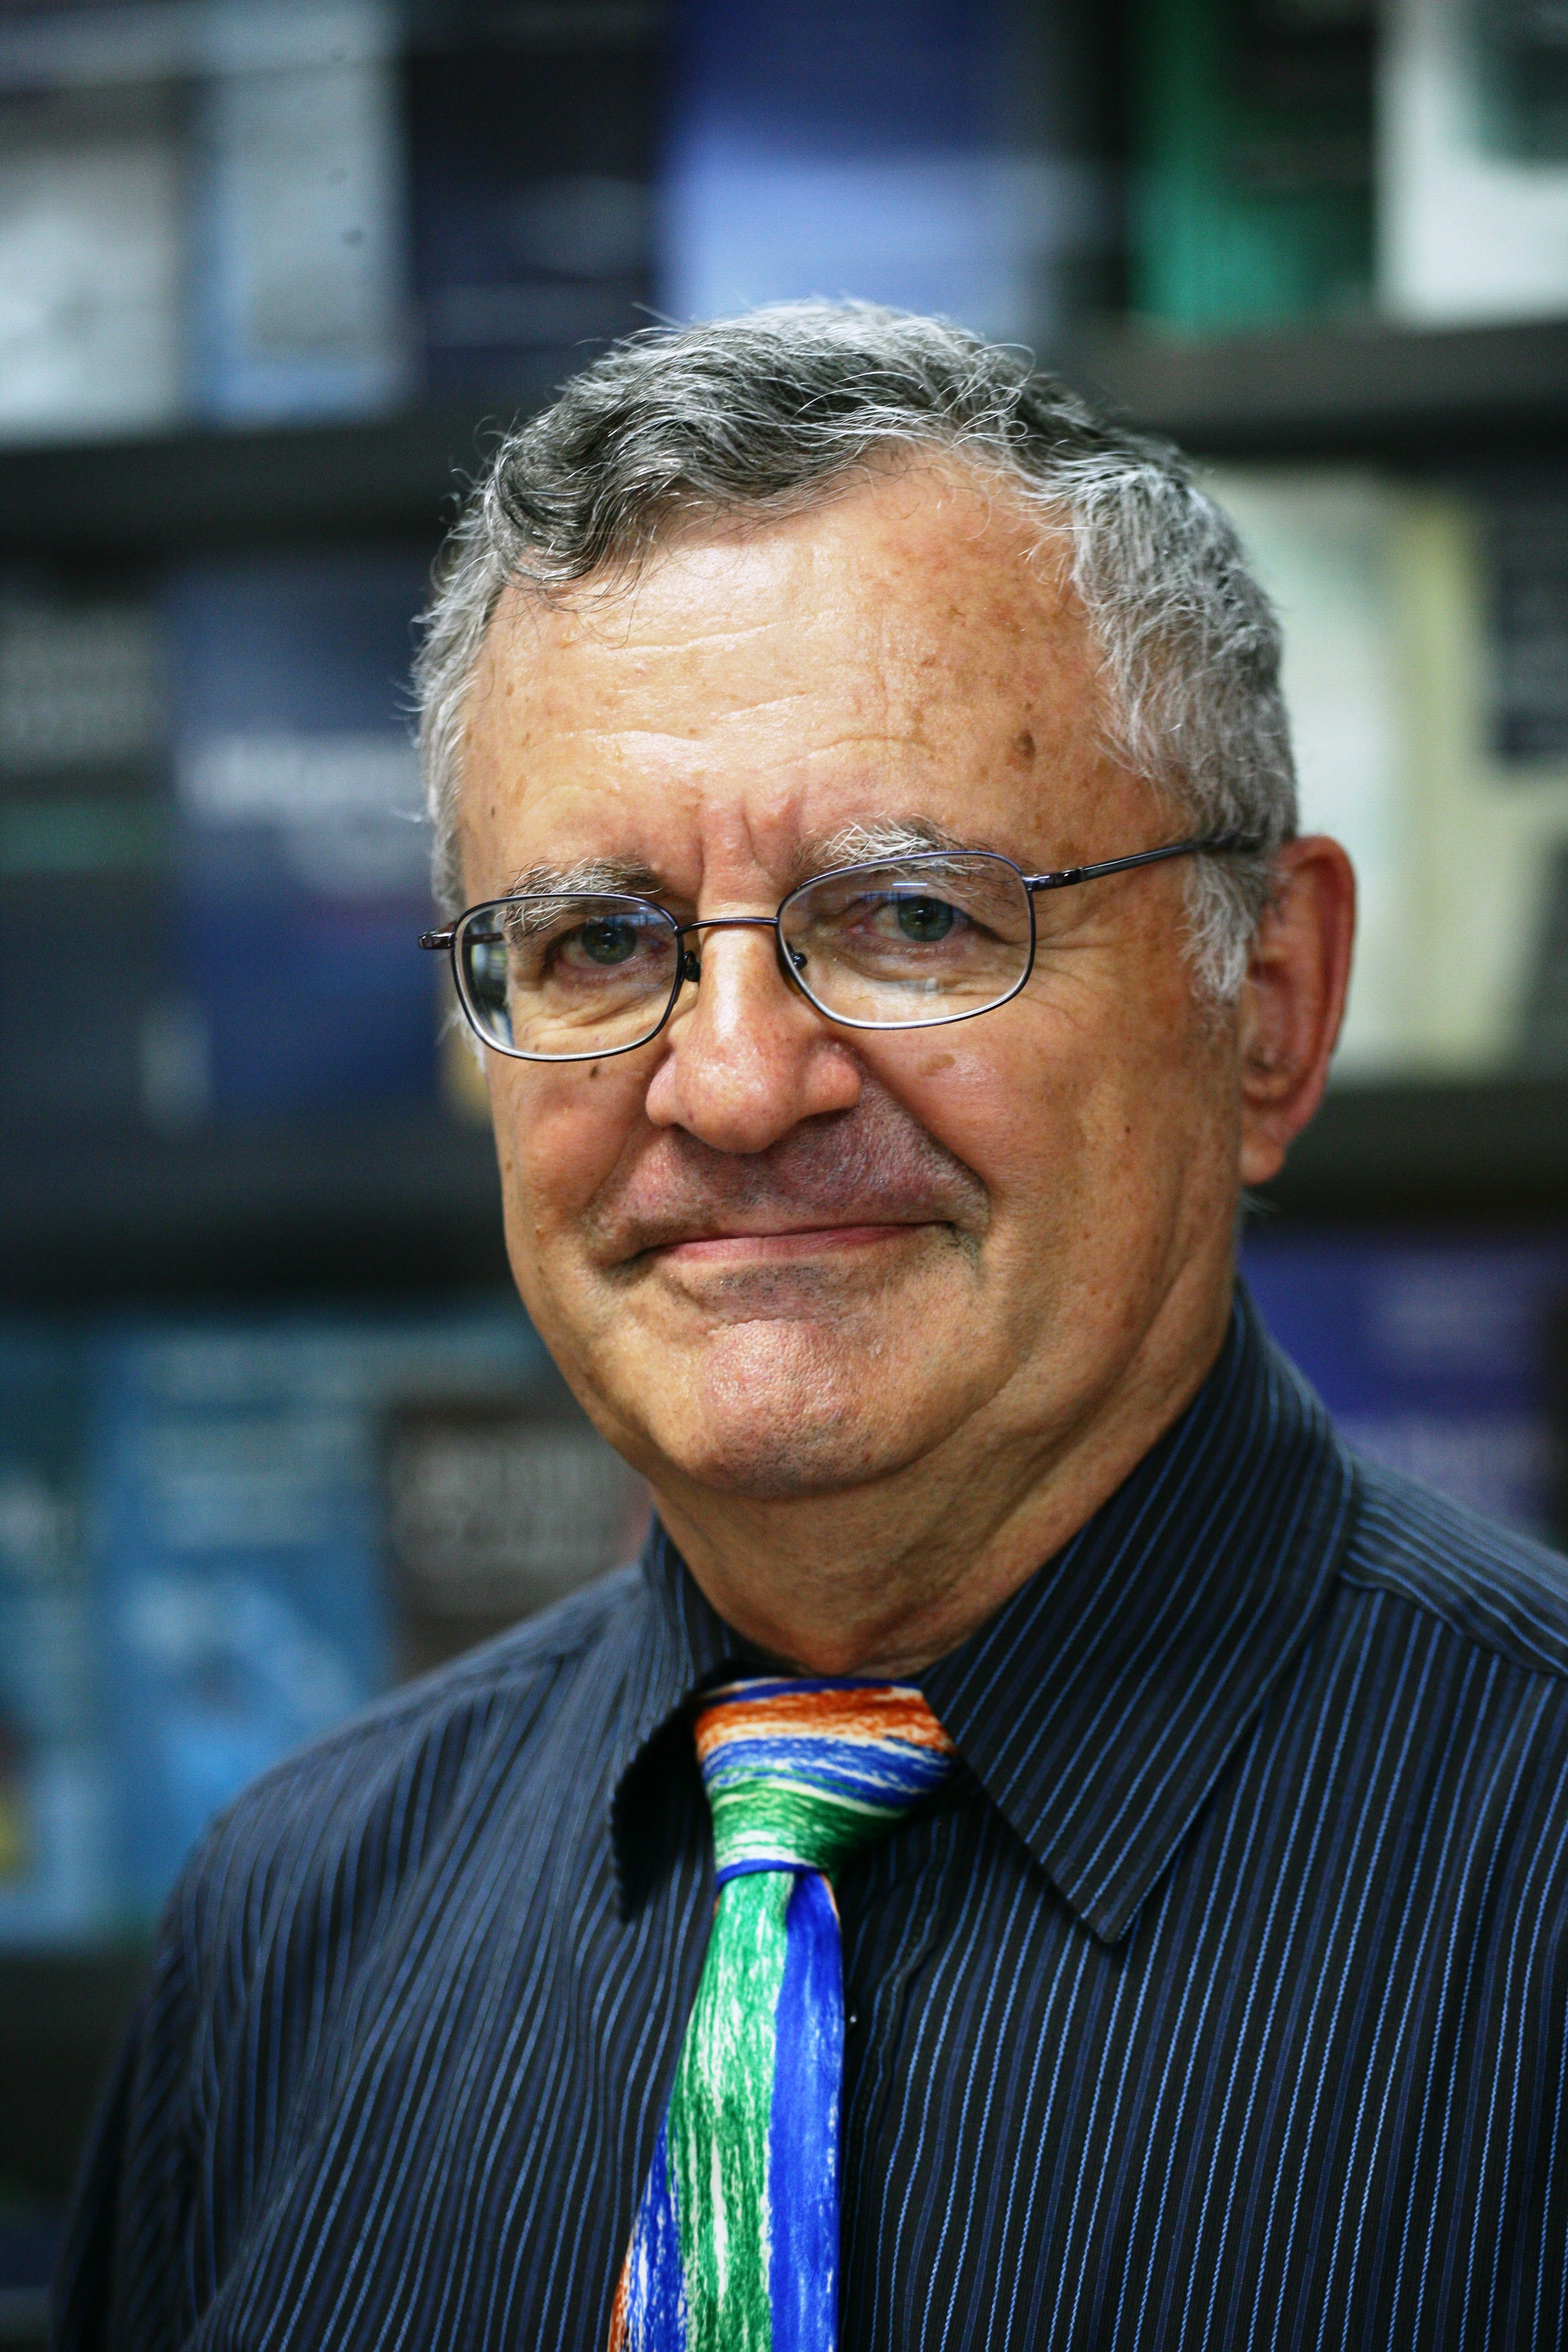 Prof. (Emeritus) Shlomo Maital